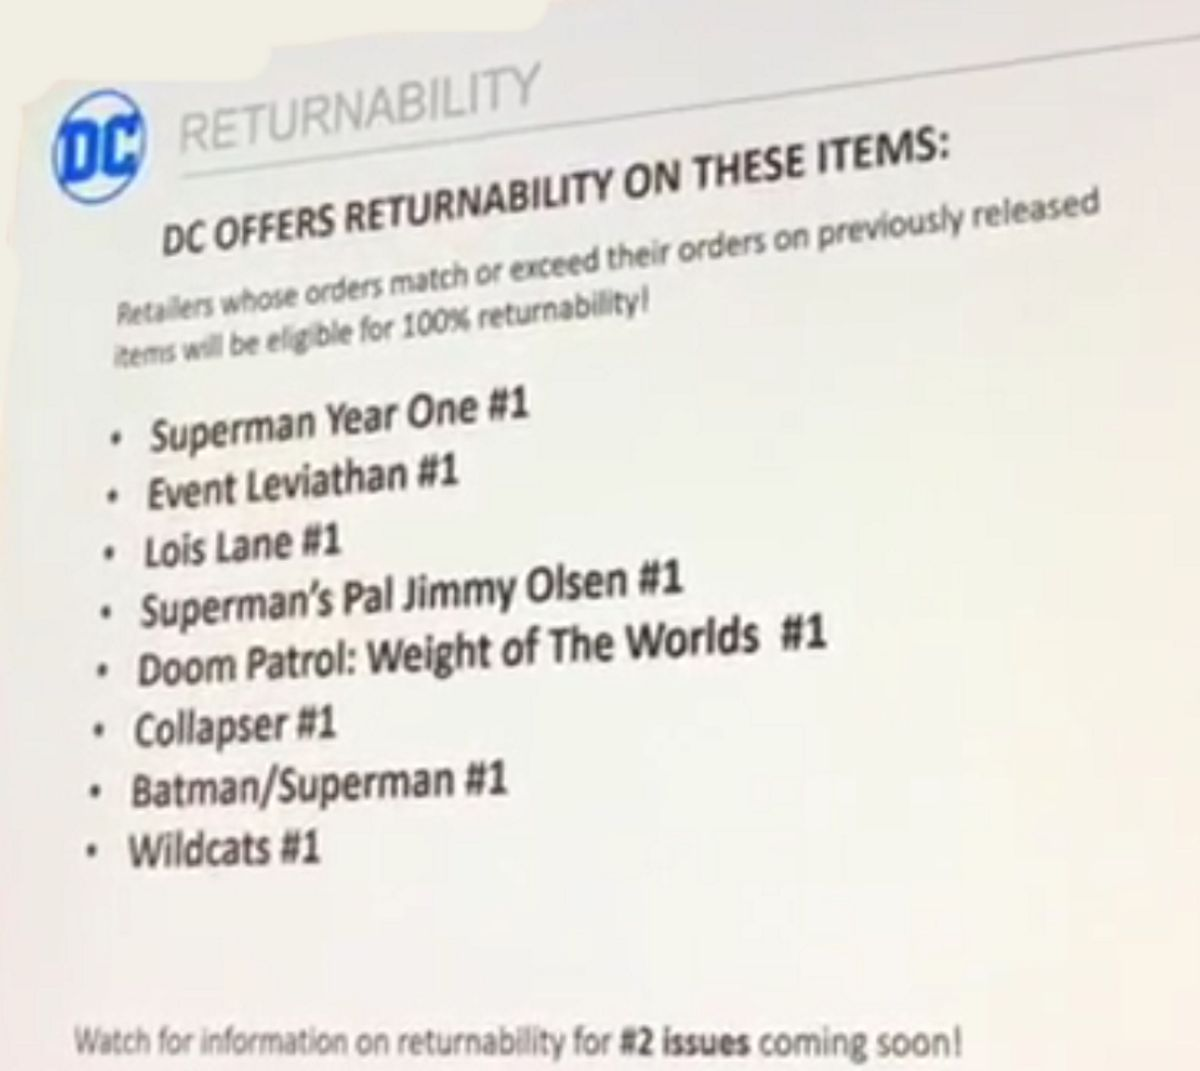 More DC Comics Being Made Returnable, Announced at Diamond Retail Summit